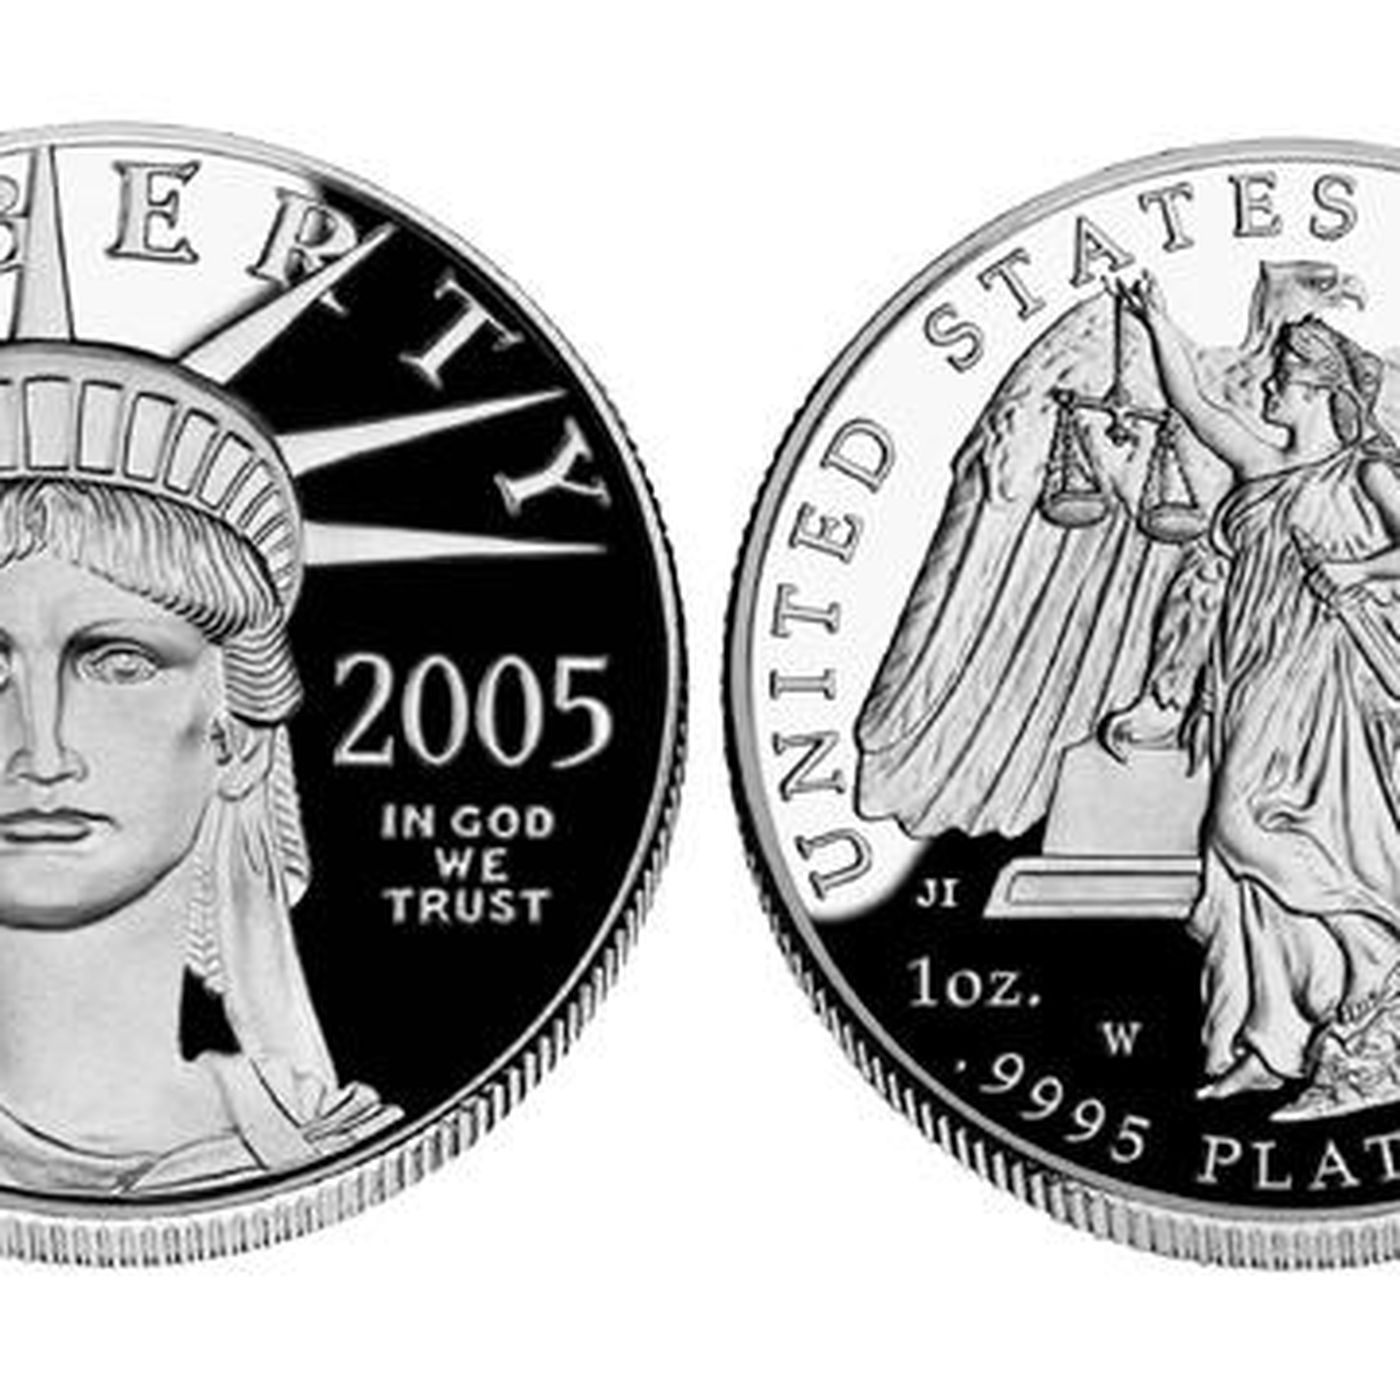 coins platinum american v dollar proof of coin one ounce eagle usa image dollars